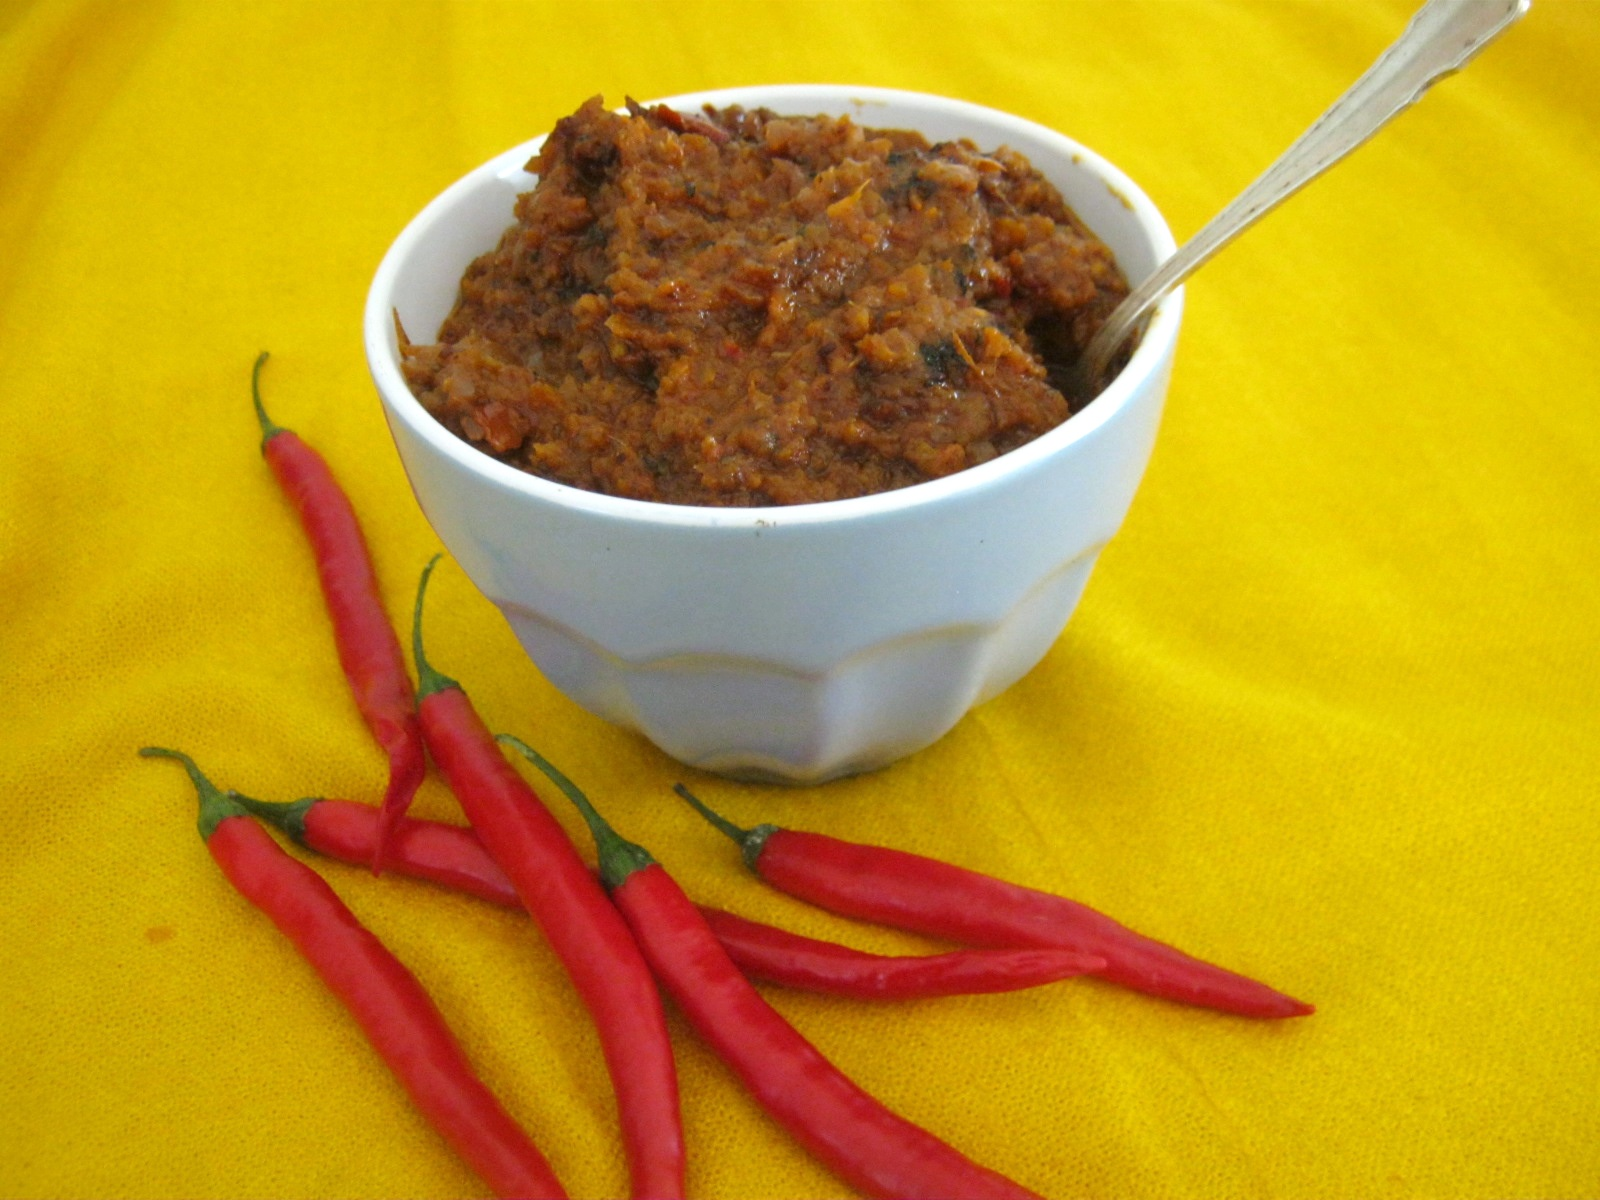 Shito - Hot Ghanaian Pepper Sauce with dried shrimps and dried eel is a great addition to virtually any savory dish